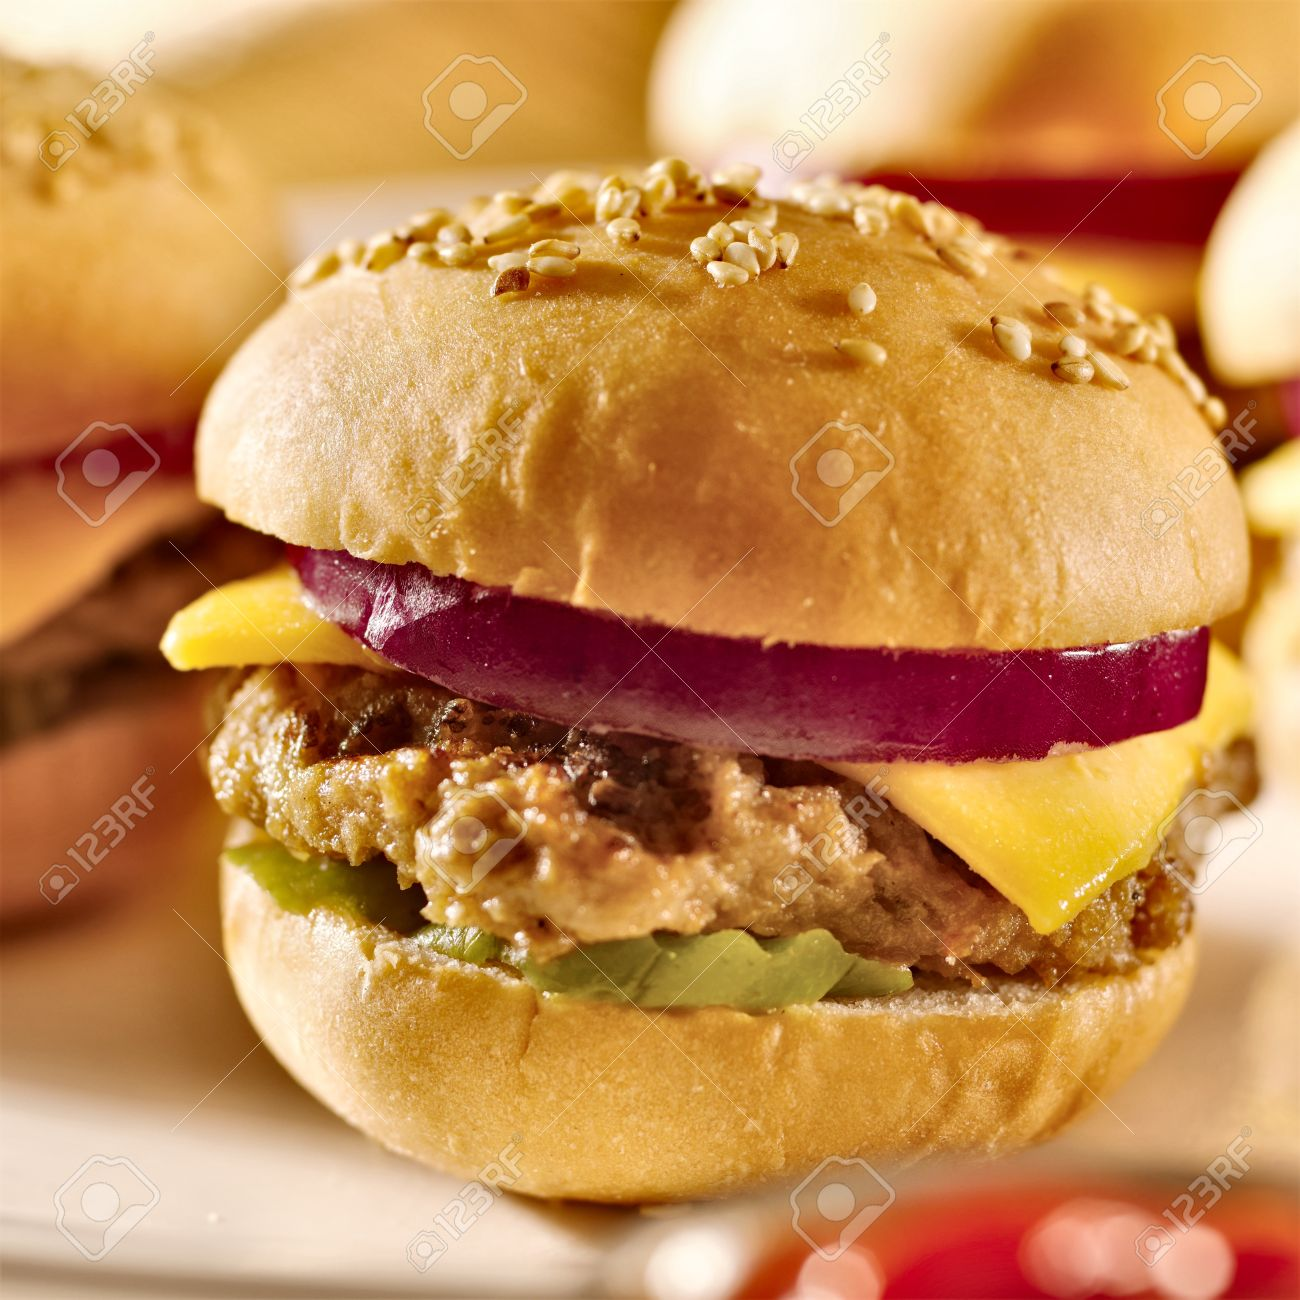 mini burgers with cheese, onion and pickle - 15529364